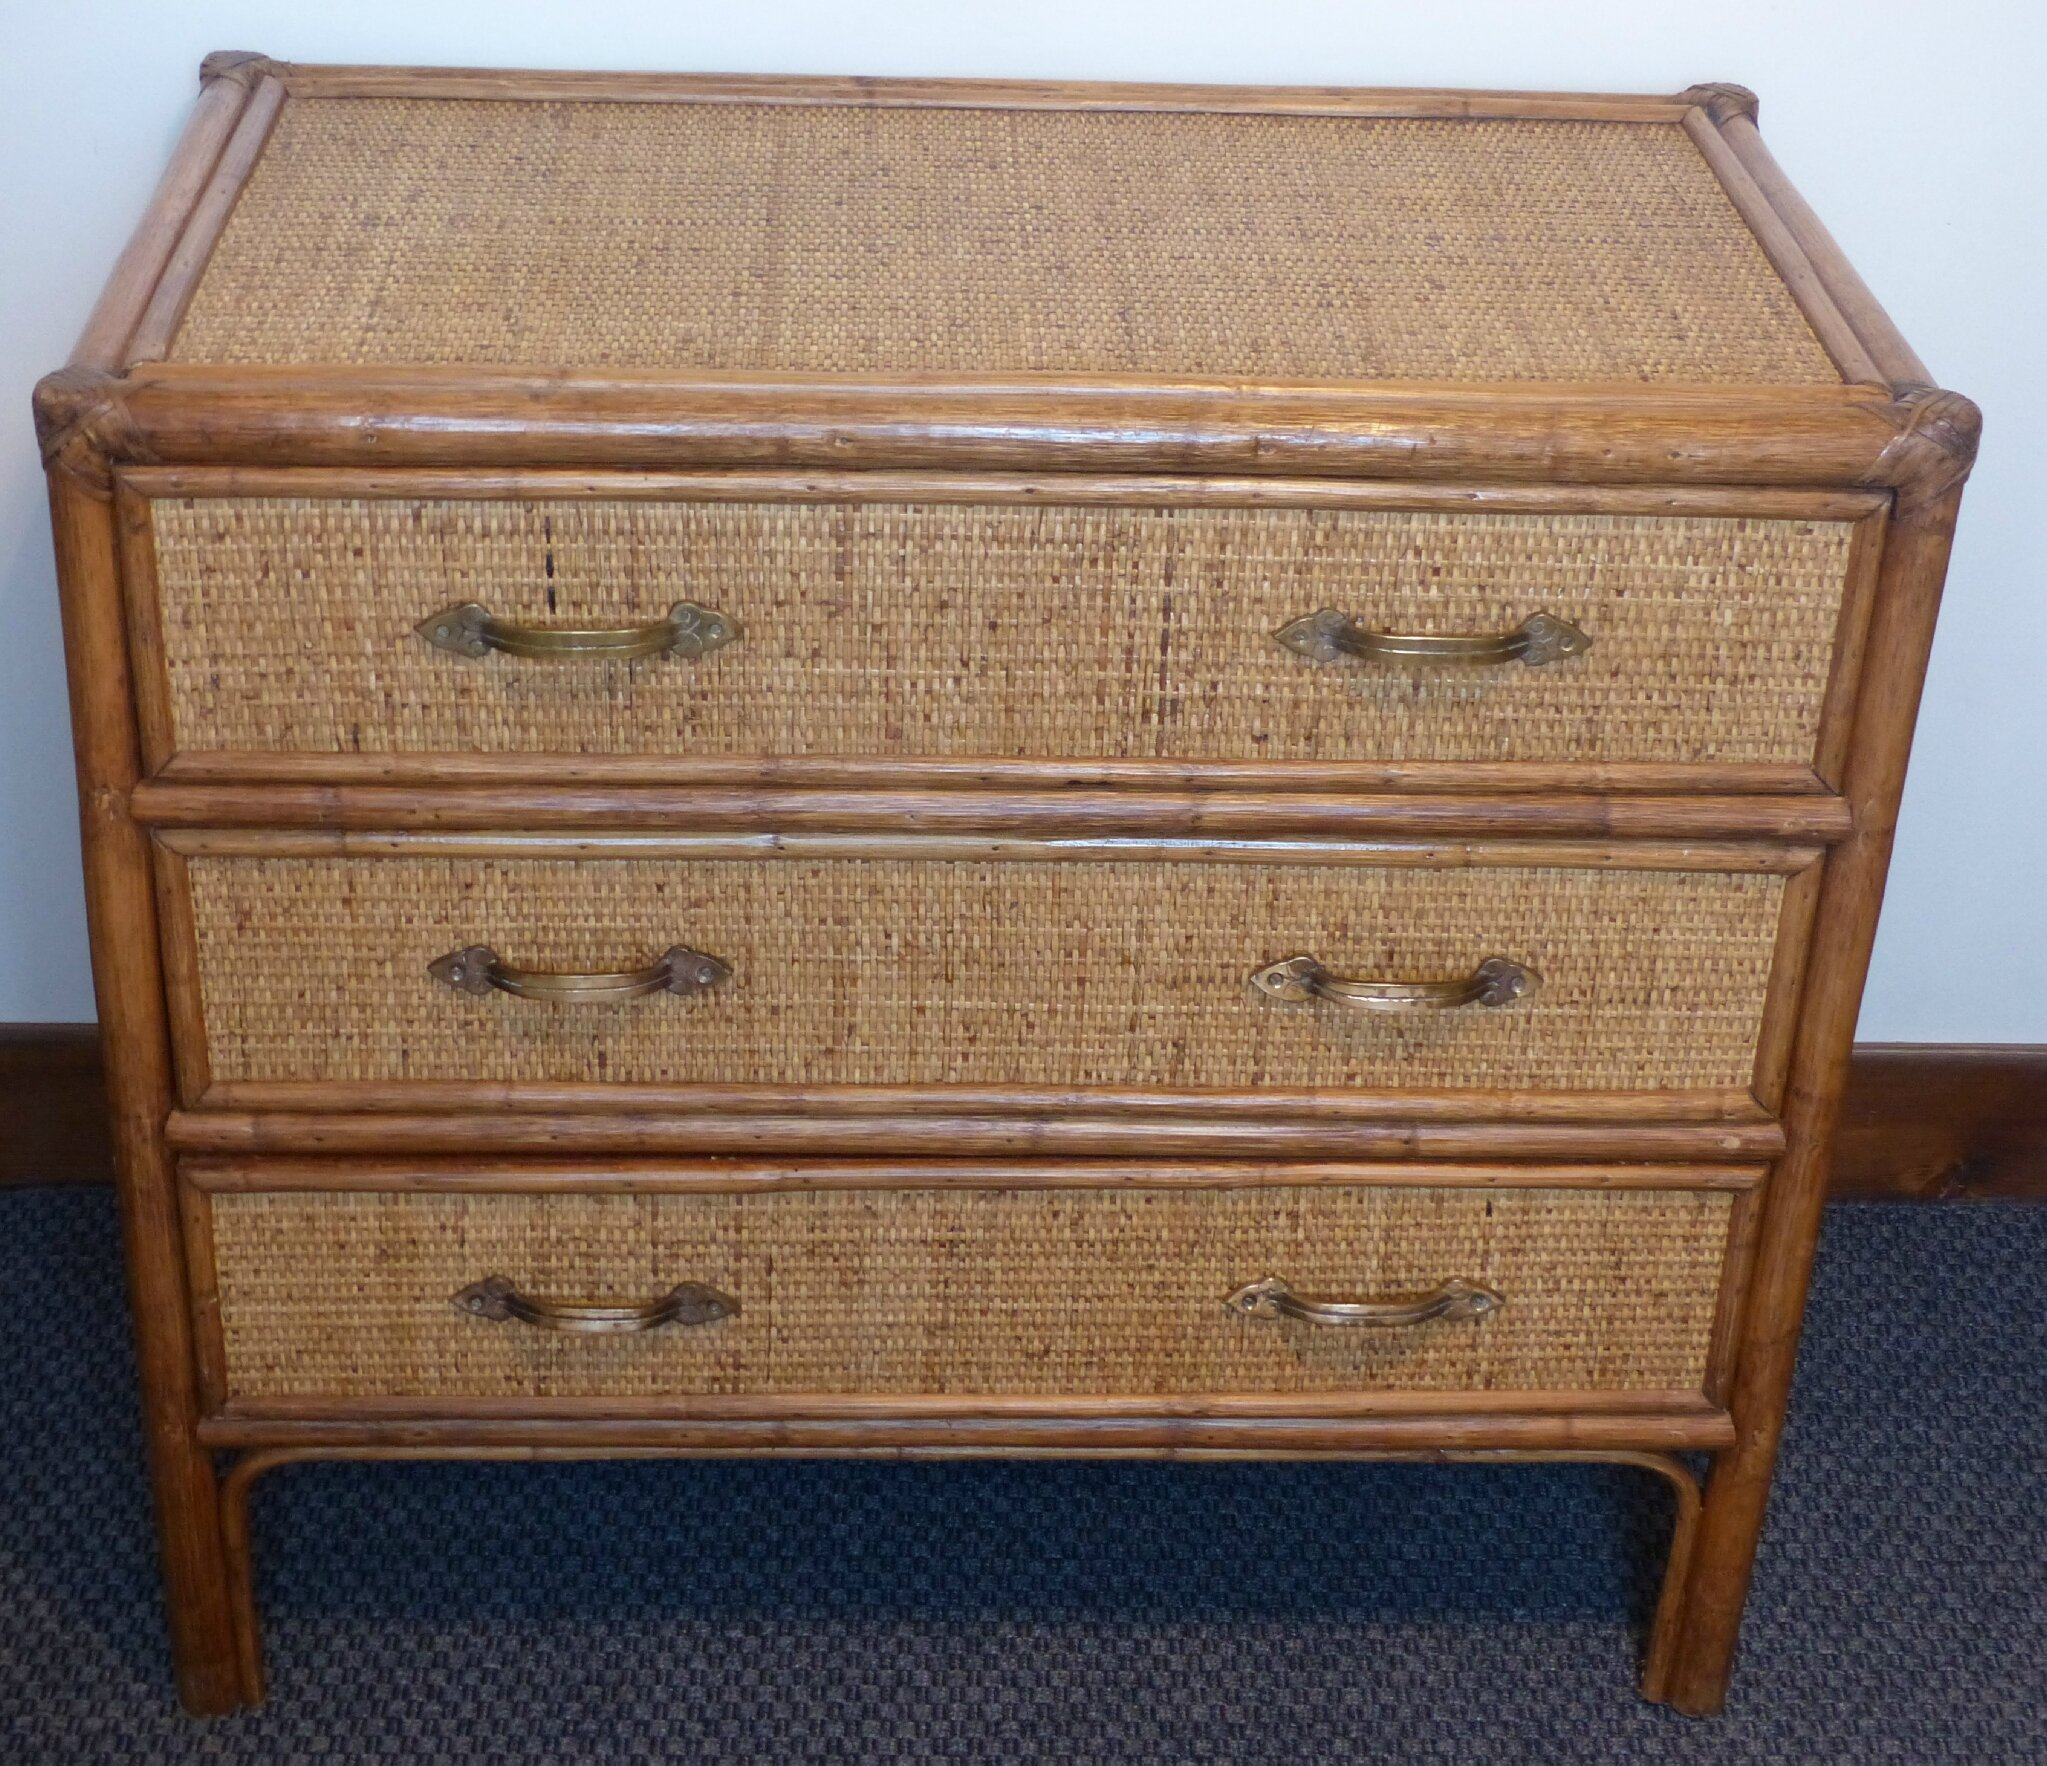 Meuble Repeint Ancienne Commode En Rotin Tresse - Atelier Darblay - Le